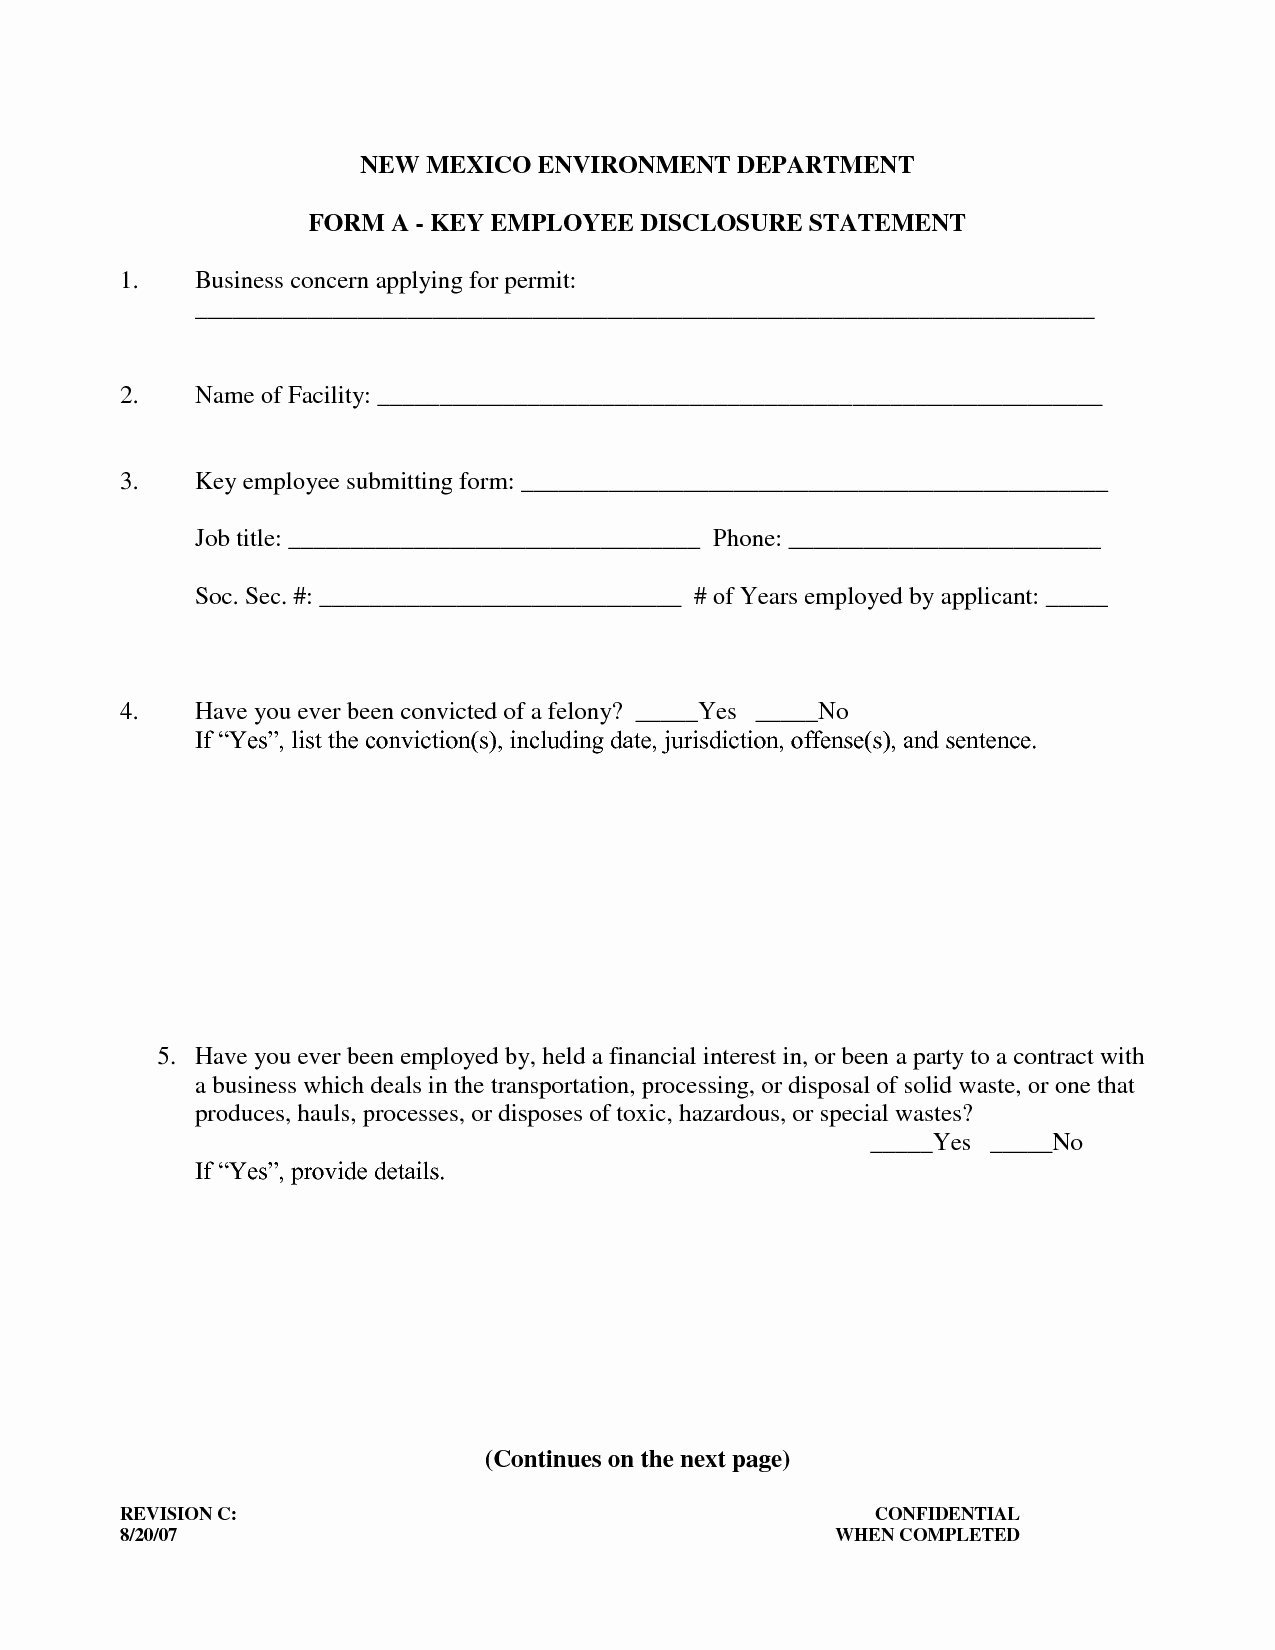 Employee Key Agreement form Best Of Employee Key Holder Agreement form Fast 8 Best Employee